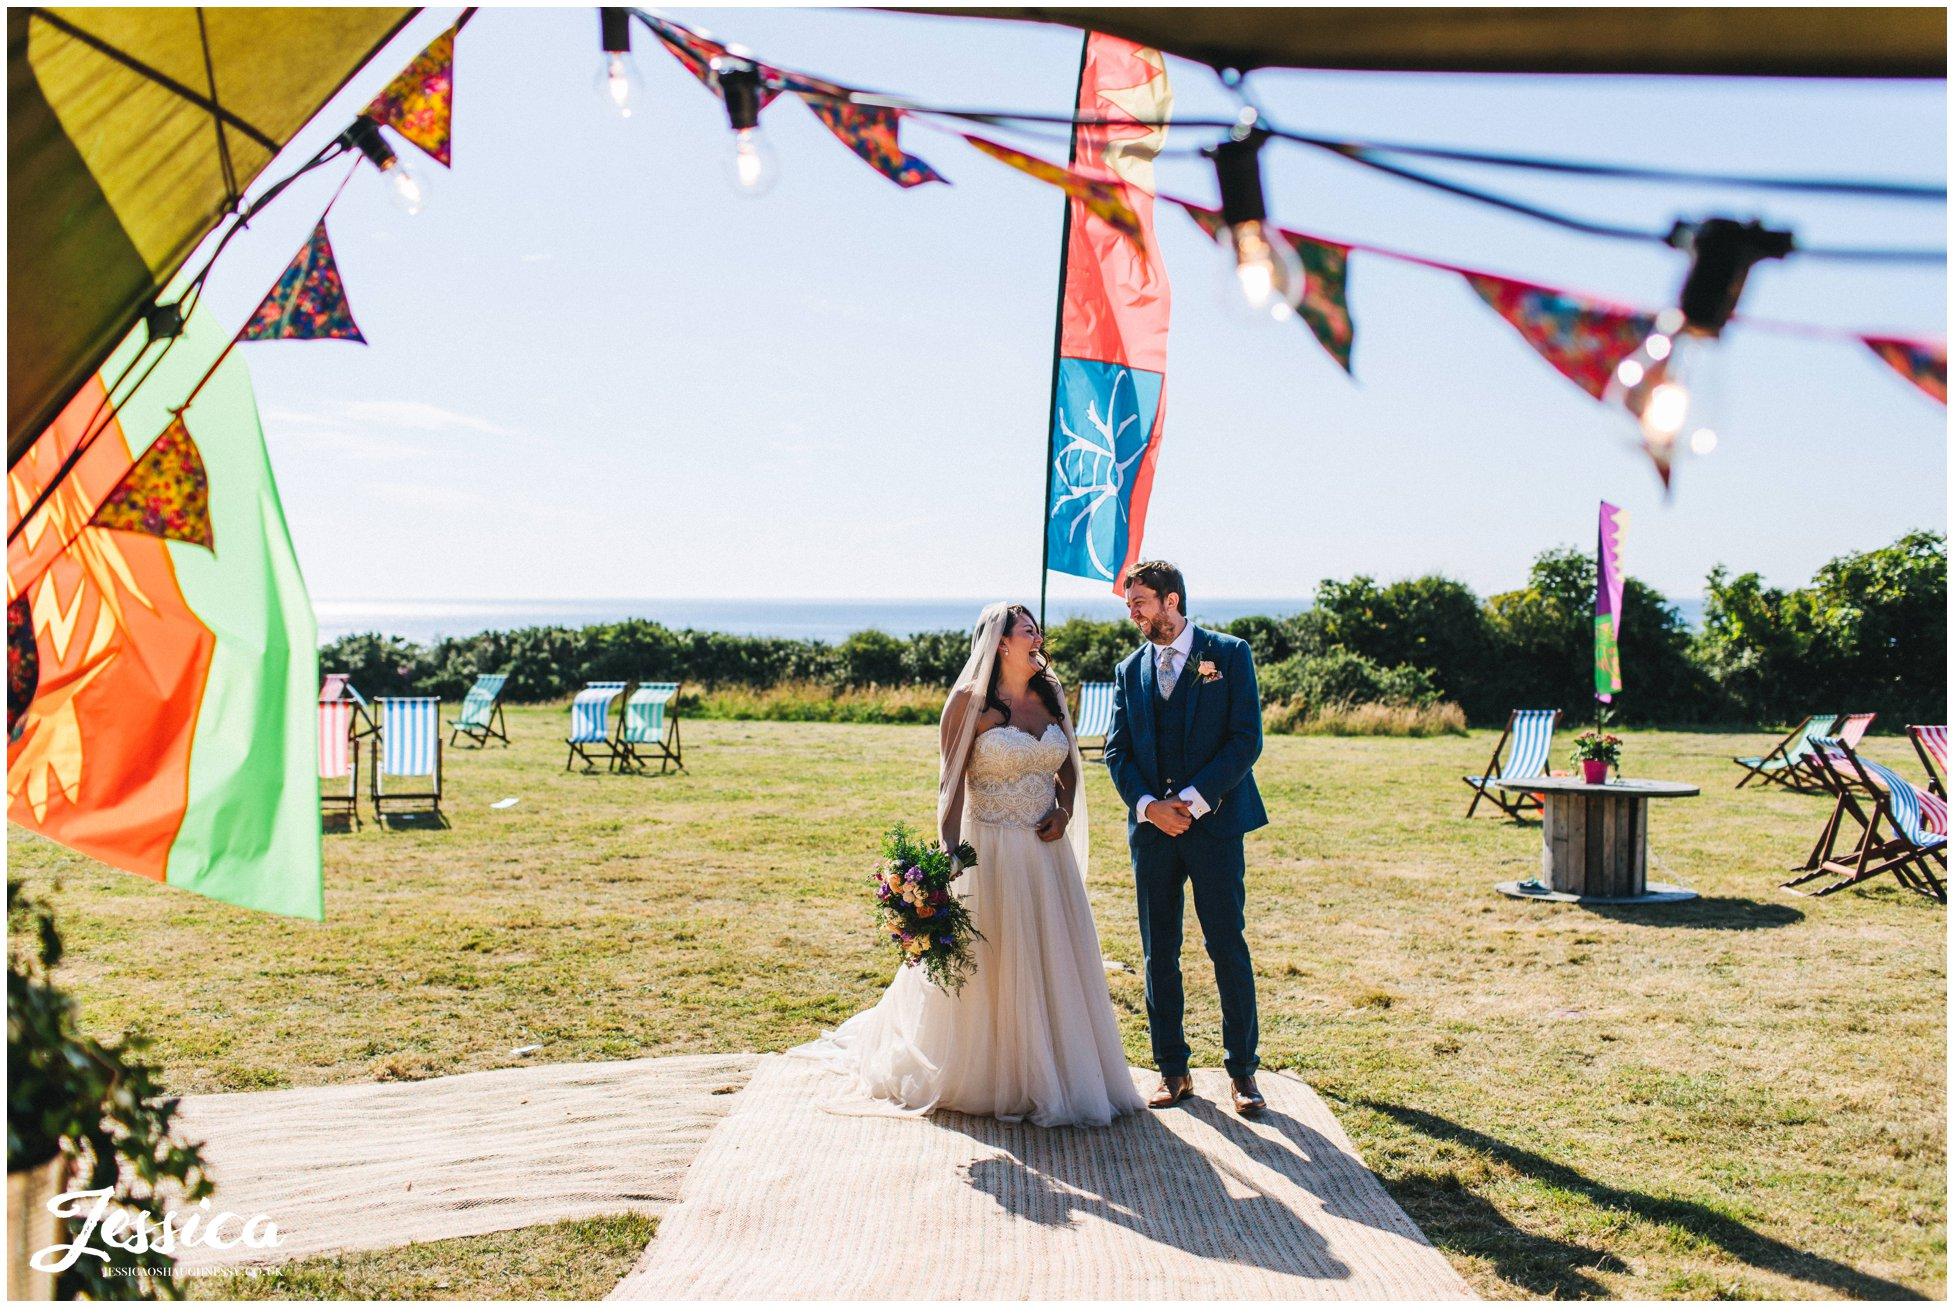 the couple wait outside the tipi to be officially announced in